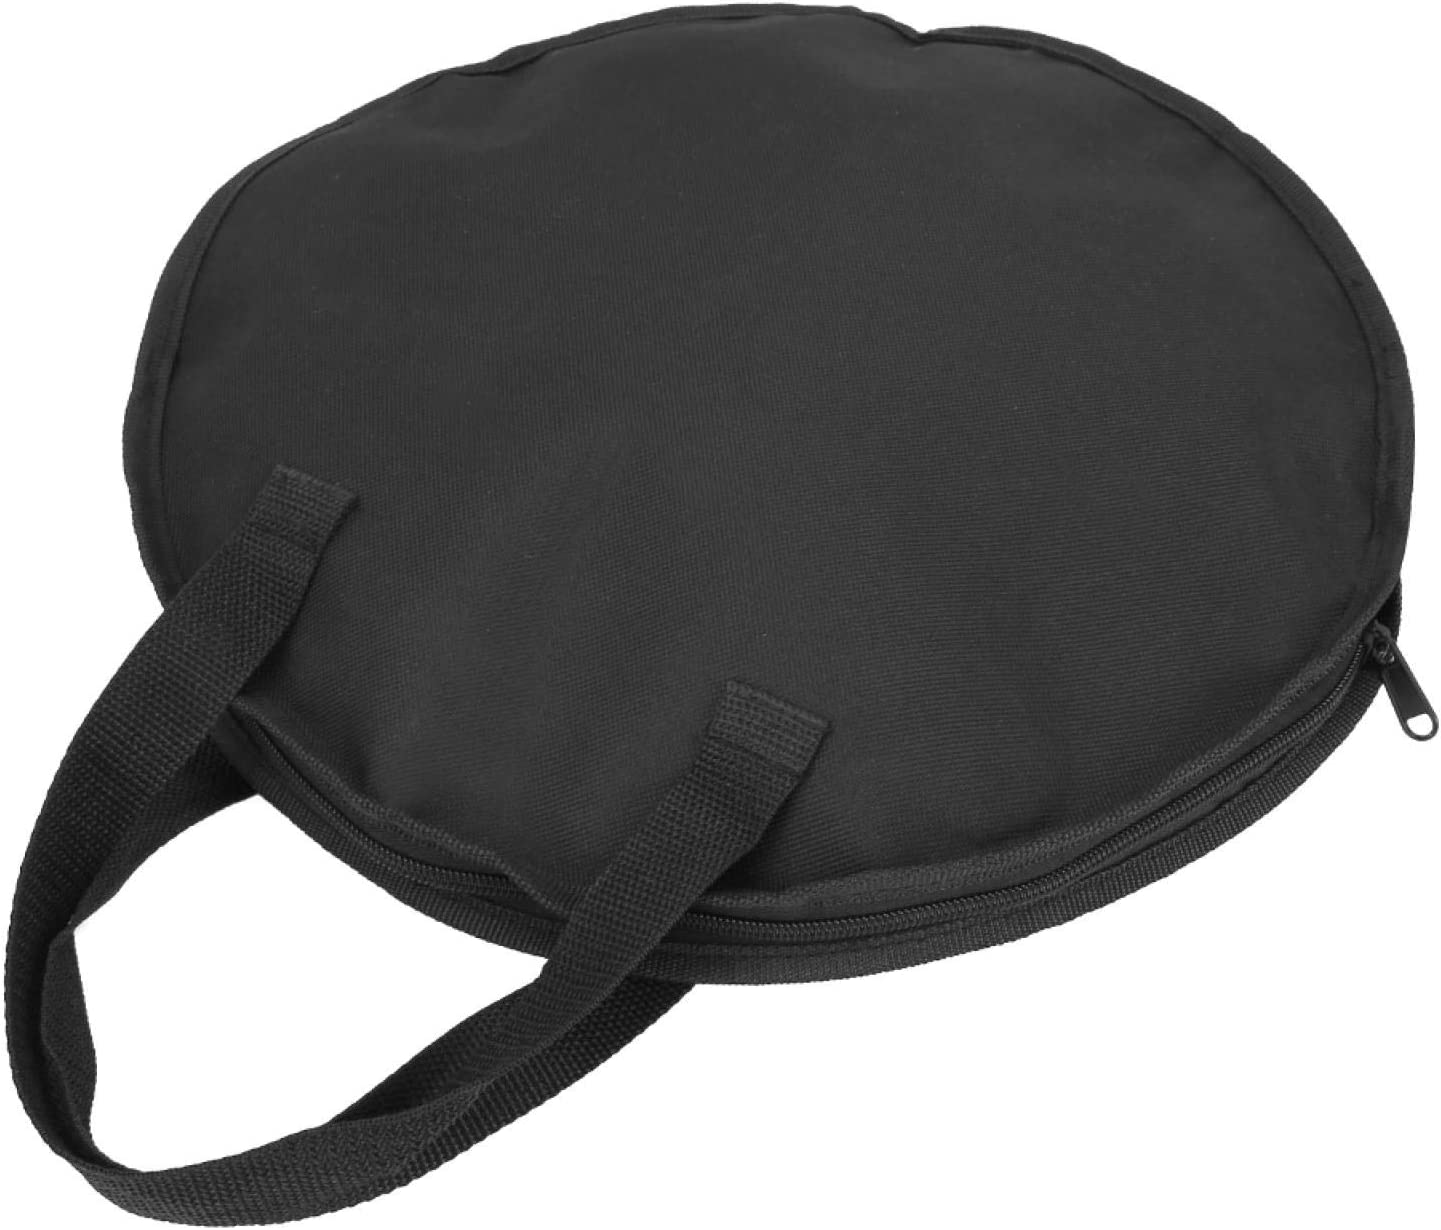 Qqmora Free shipping Dumb Drum Bag 67% OFF of fixed price Lightweight for or Students Beginners.